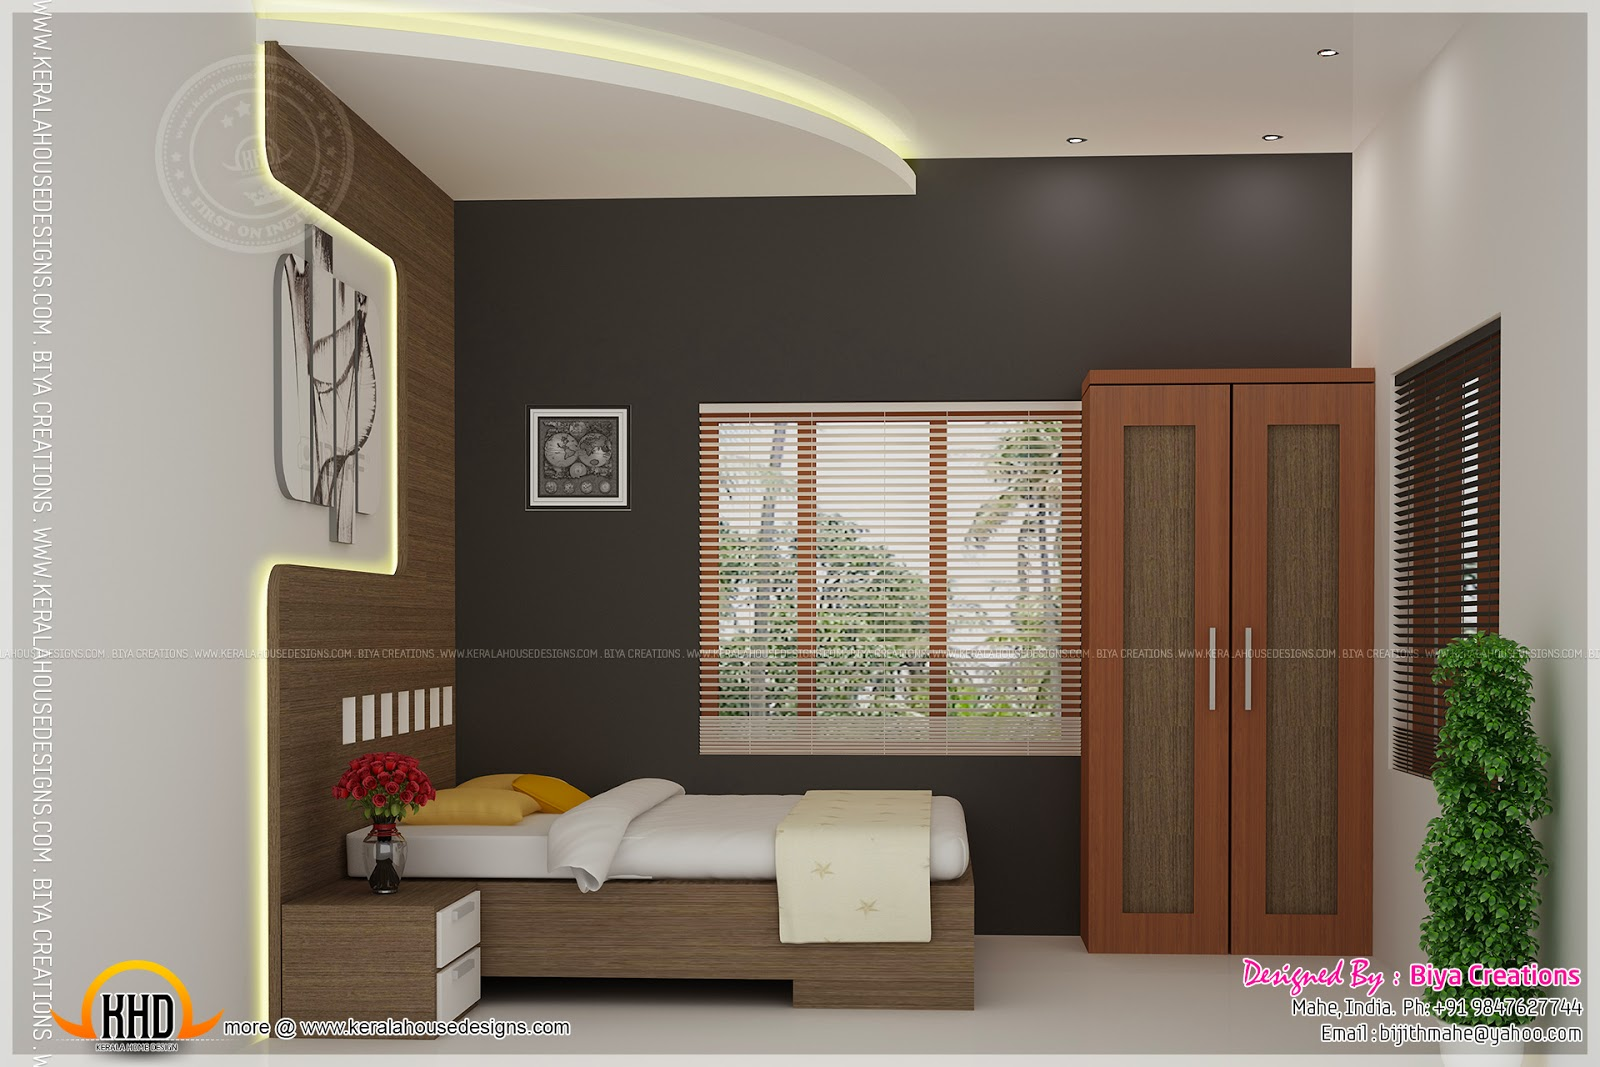 Bedroom kid bedroom and kitchen interior kerala home for Kitchen interior design india